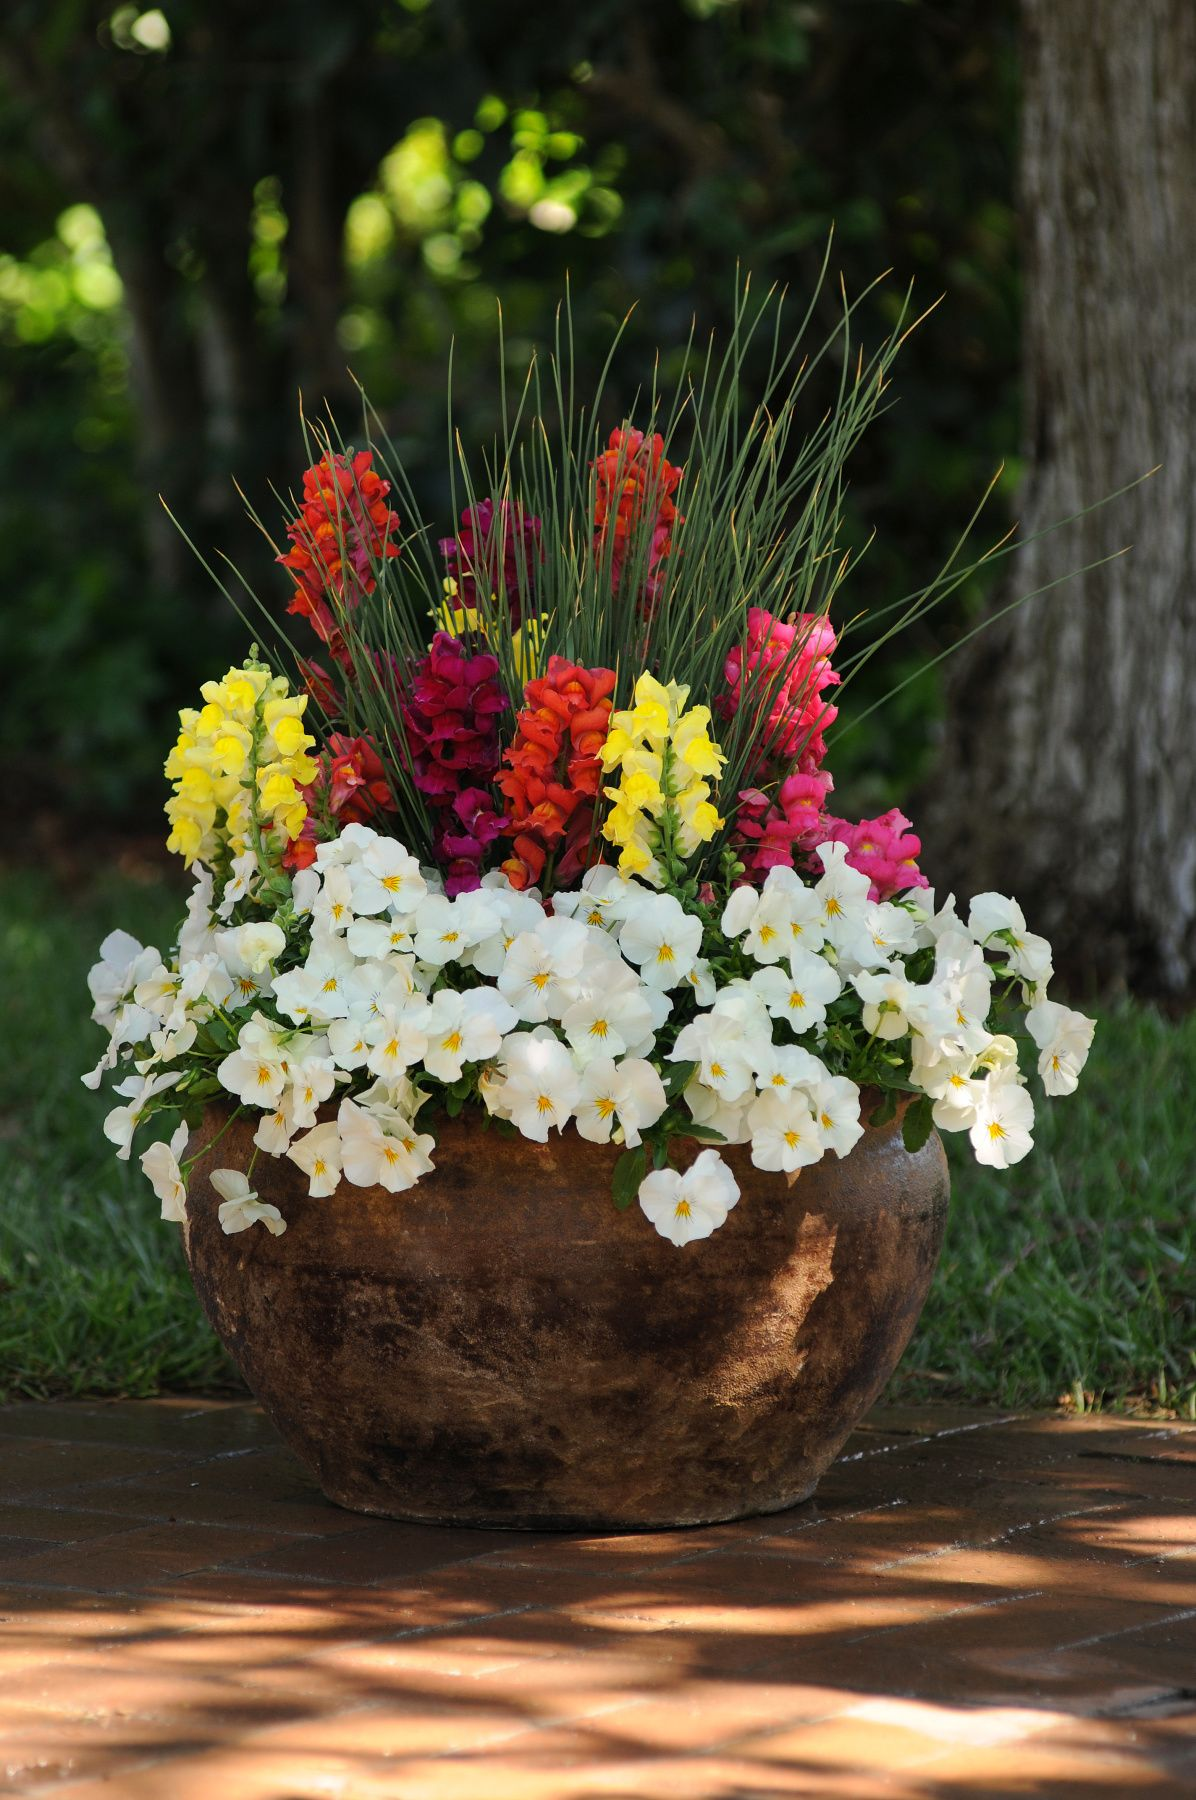 Snapdragon Pictures Container flowers, Container